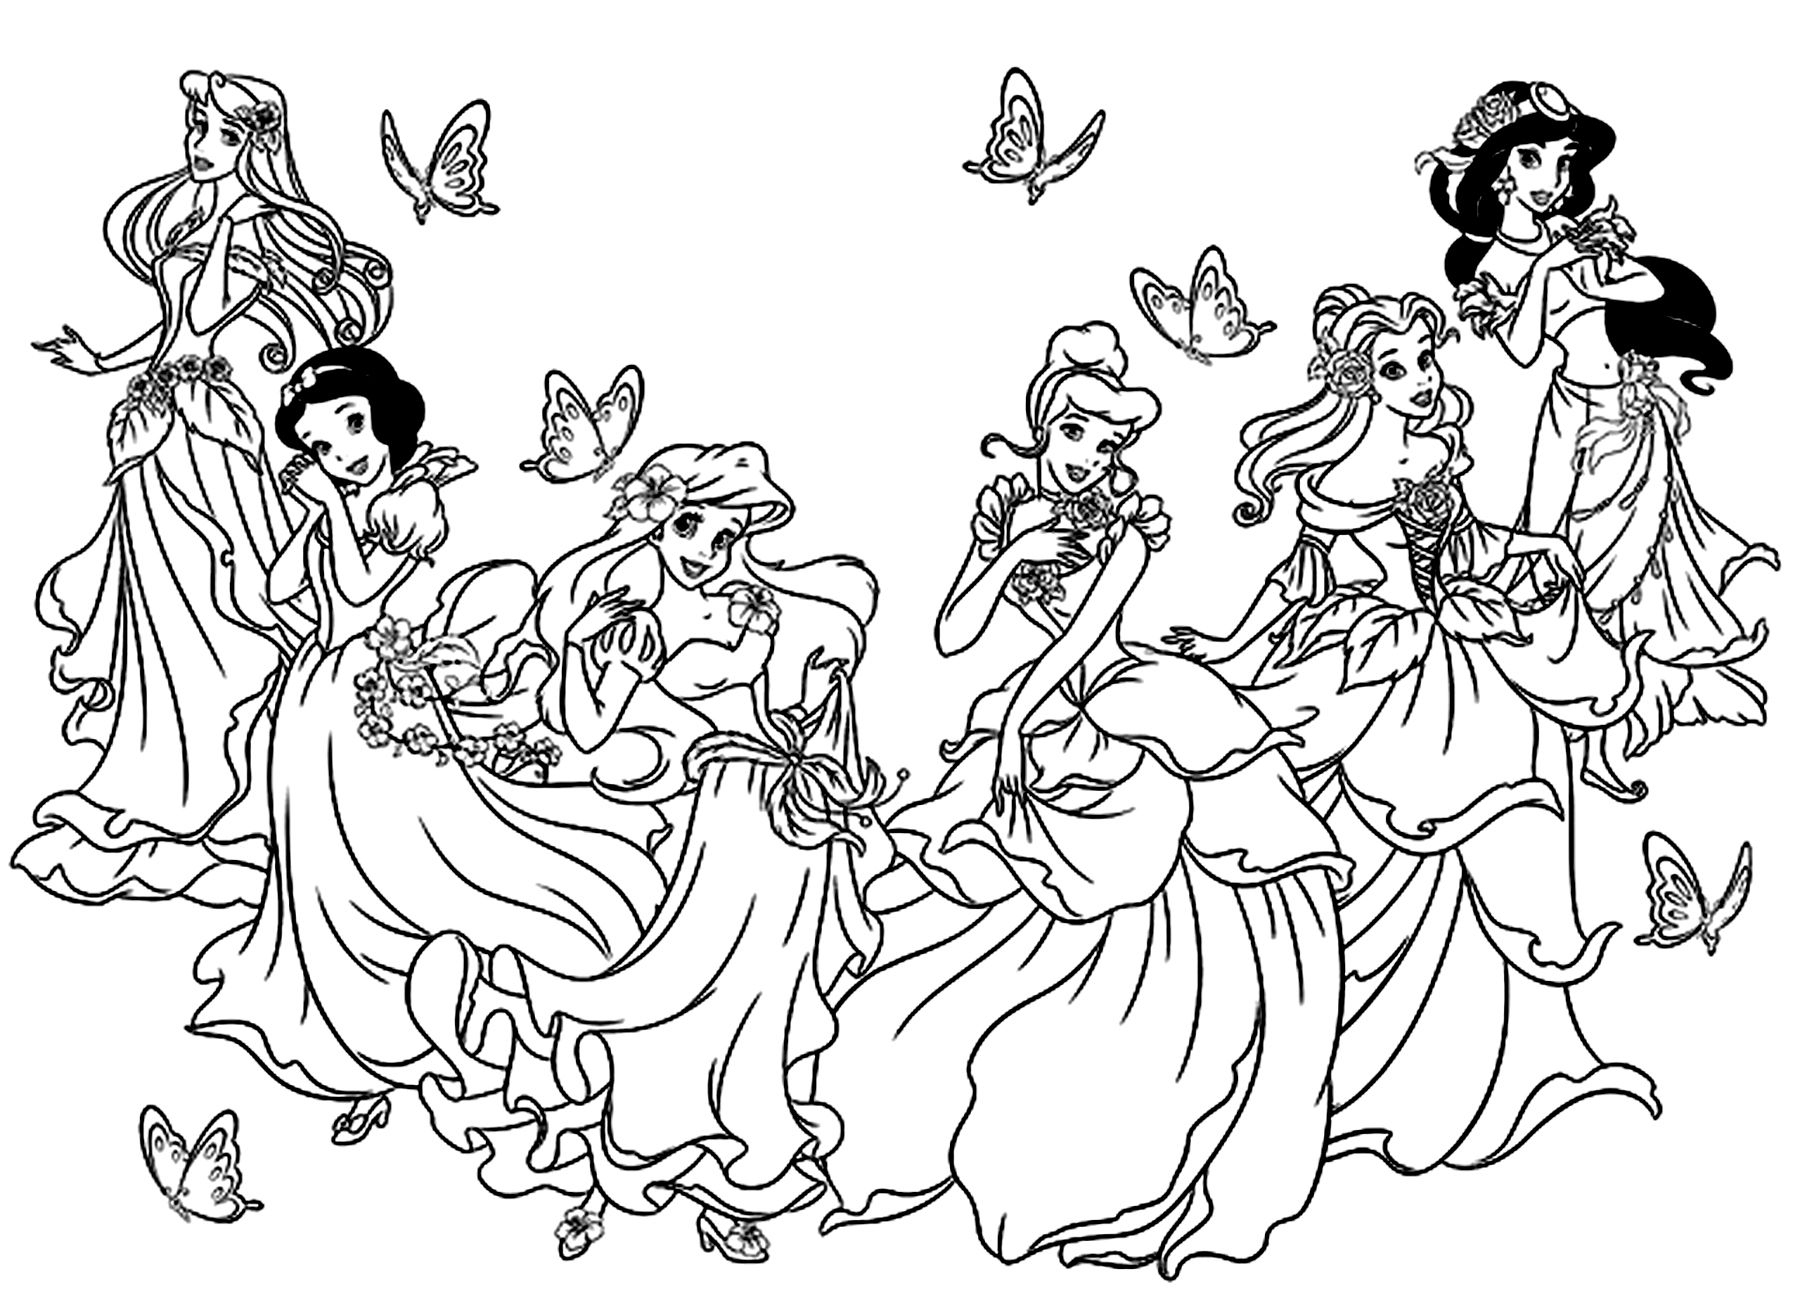 All Princesses Disneyfrom The Gallery : Back To Childhood pour Coloriage Princesses Disney À Imprimer